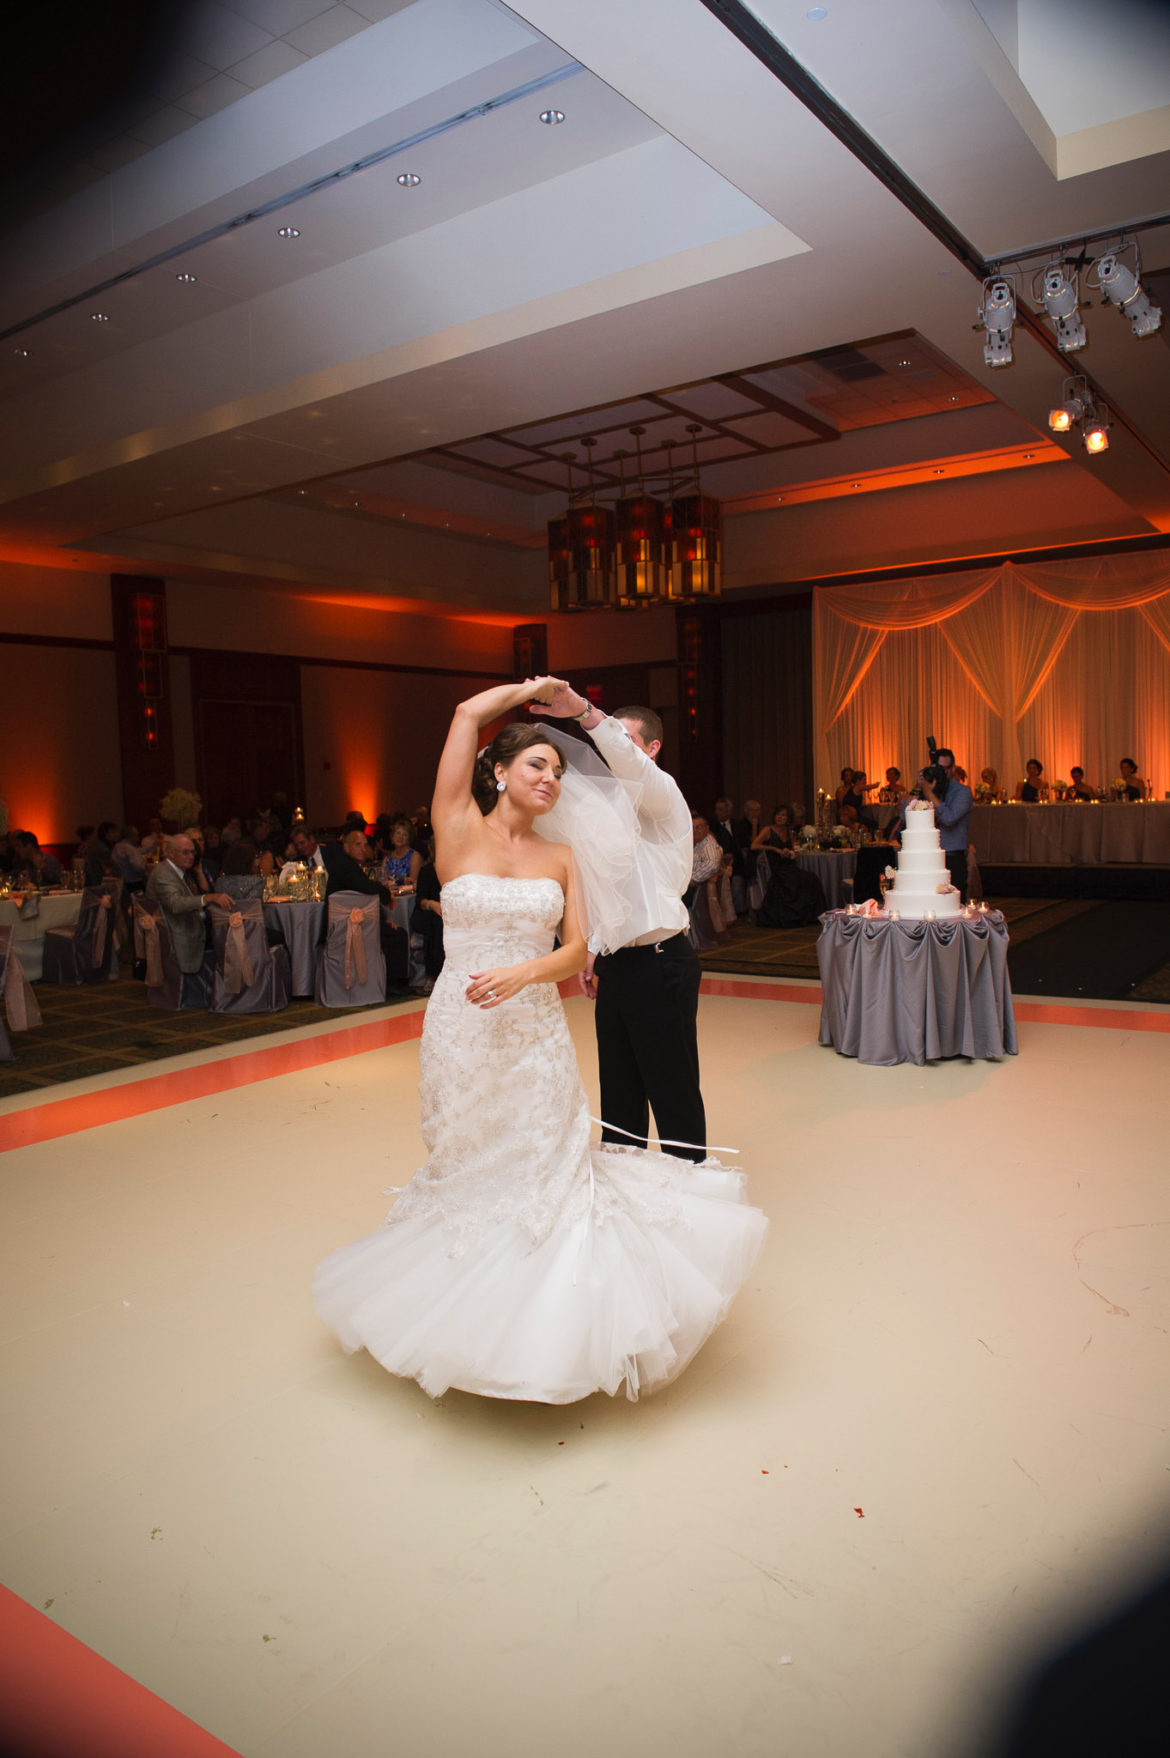 Elegant_Event_Lighting_Chicago_Eaglewood_Resort_Spa_Itasca_Wedding_Ivory_Matte_Dance_Floor_First_Dance_Amber_LED_Uplighting